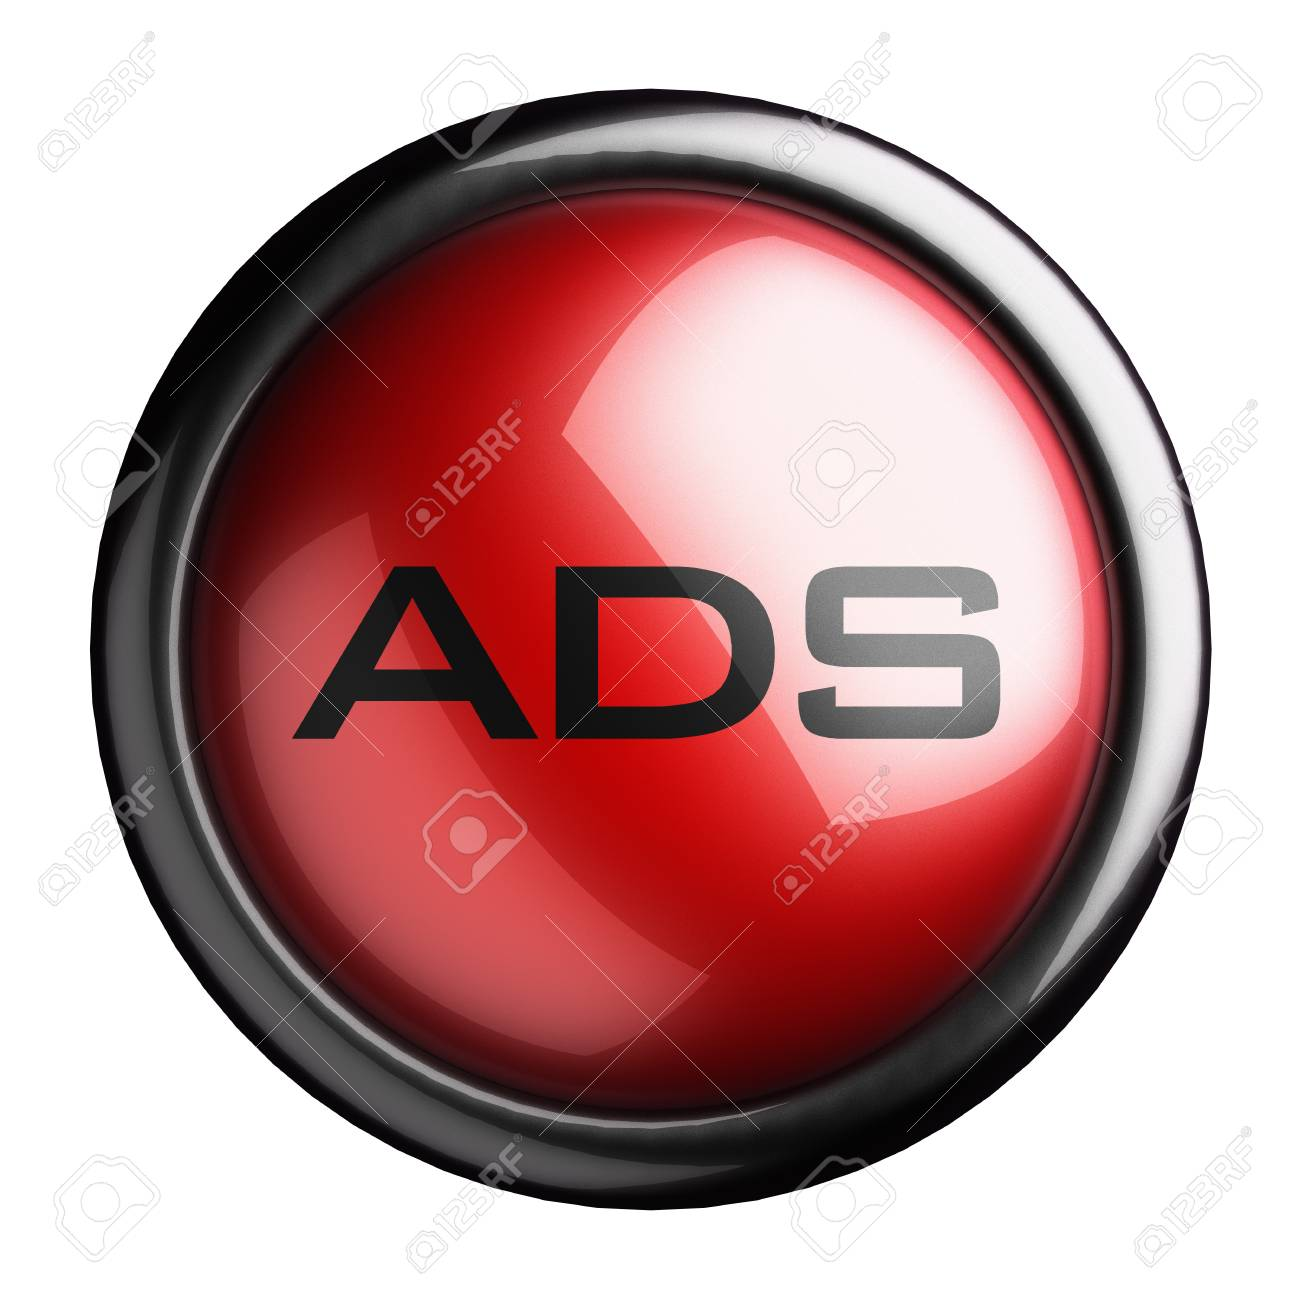 Word on the button Stock Photo - 15582752